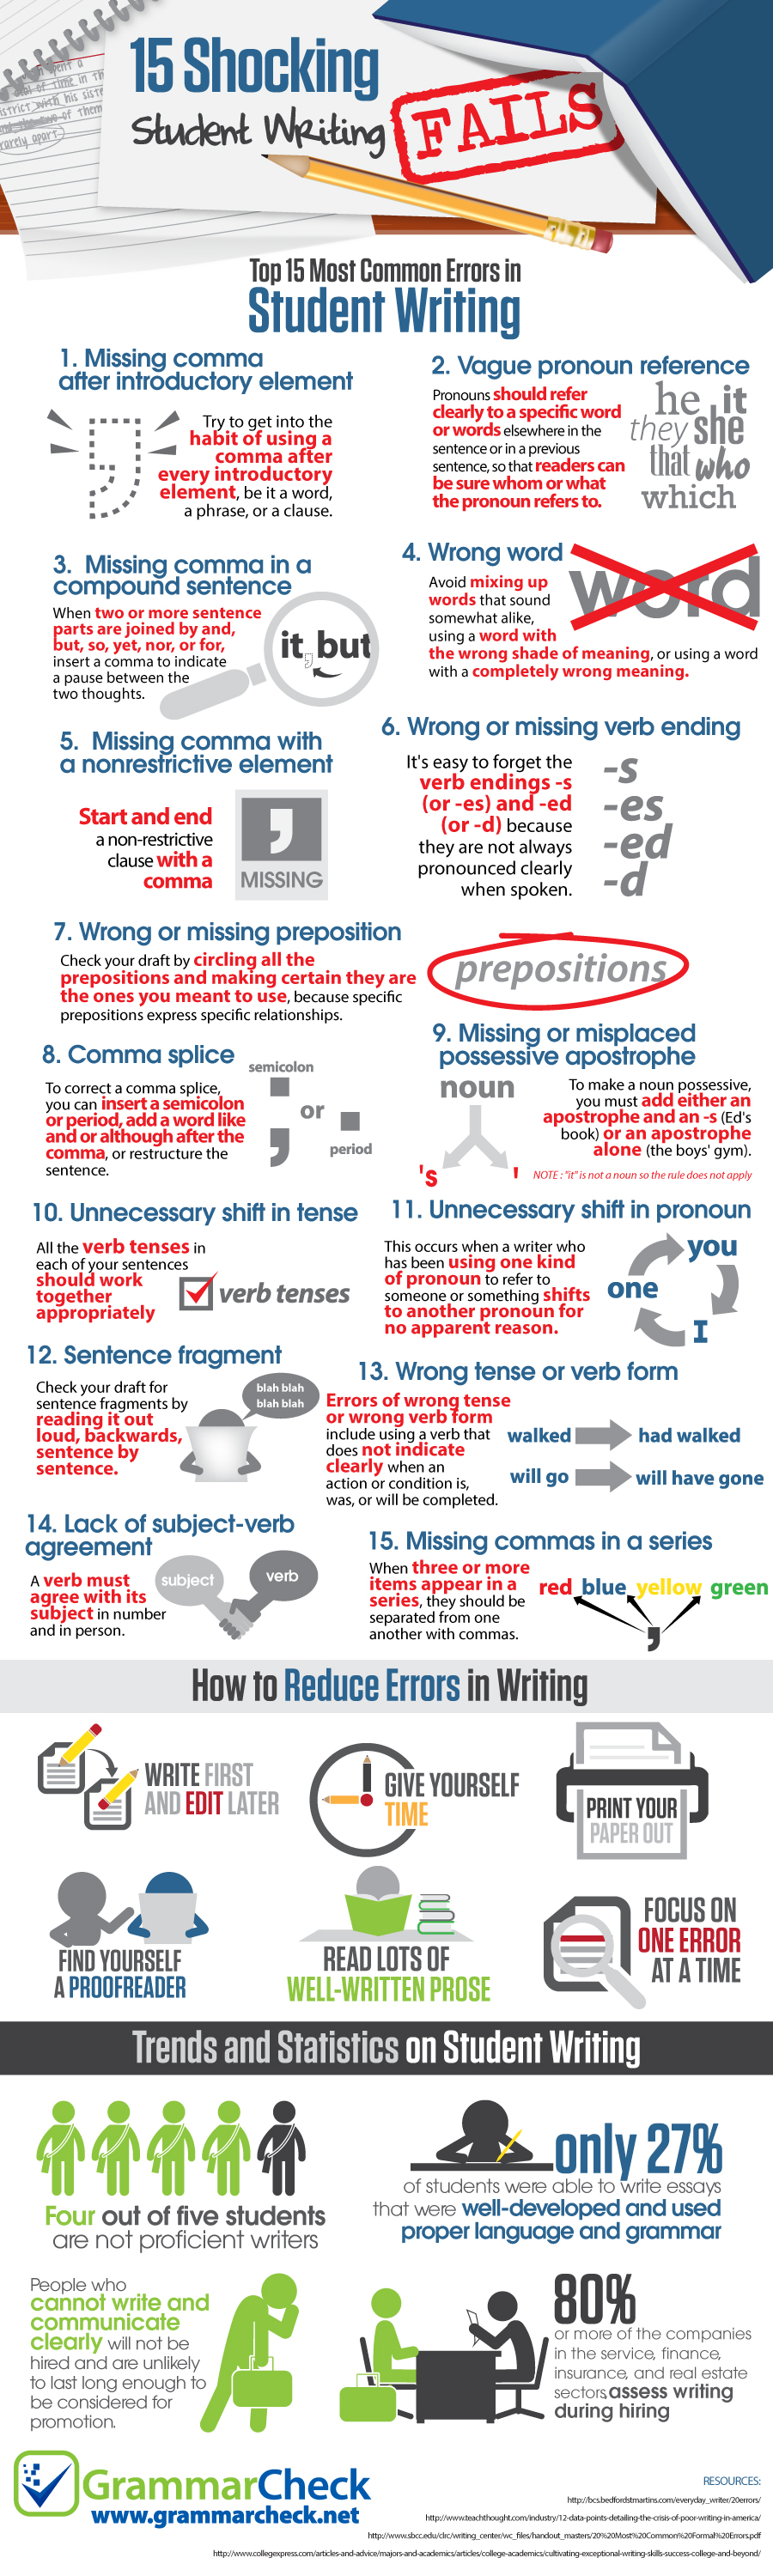 15 Shocking Student Writing Fails (Infographic)